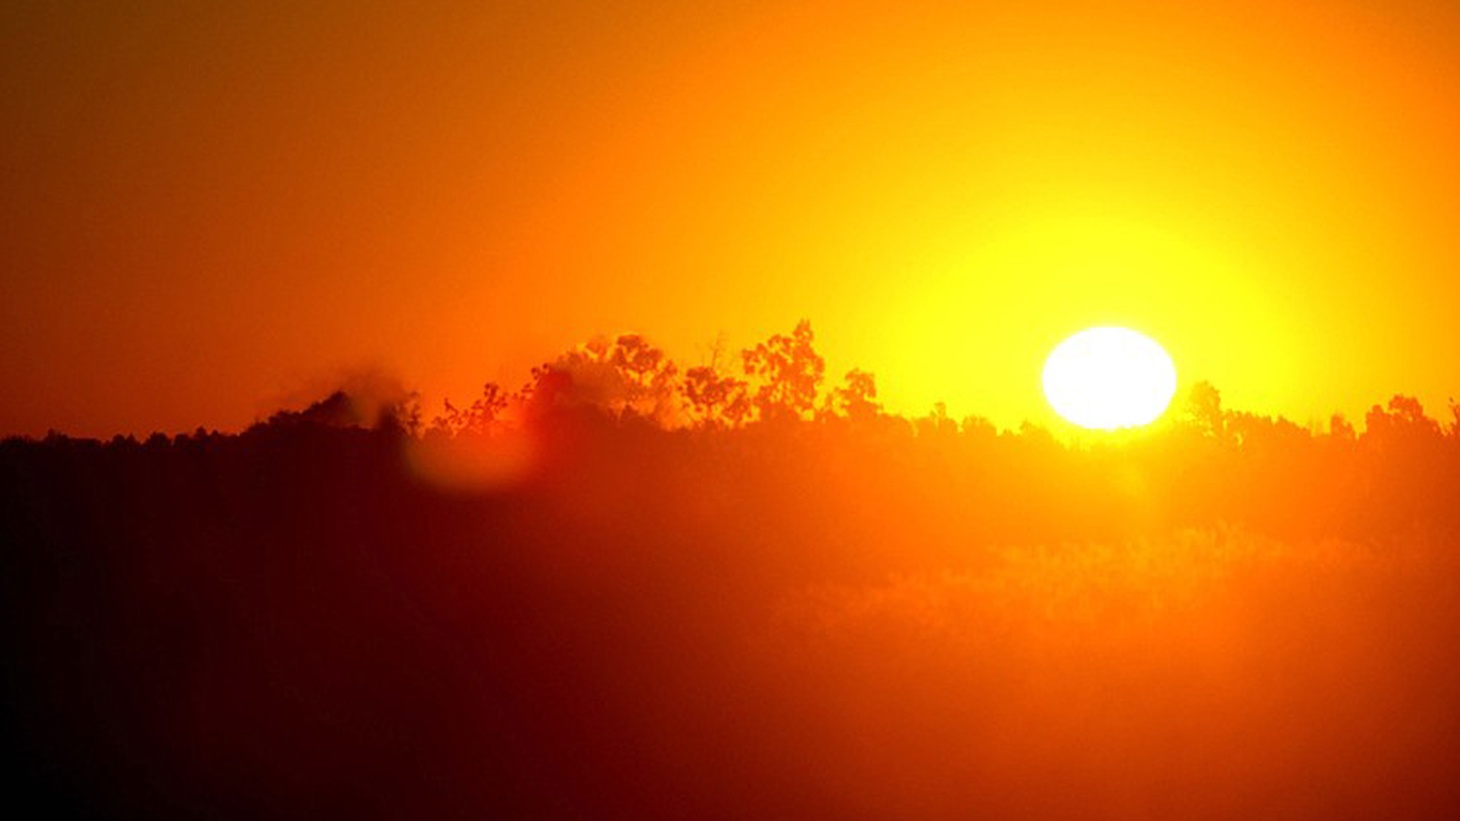 We know summers are typically hot, but does it feel even hotter than usual? Researchers at UC Santa Barbara say heat waves like the one we're experiencing right now represent an alarming climate trend.